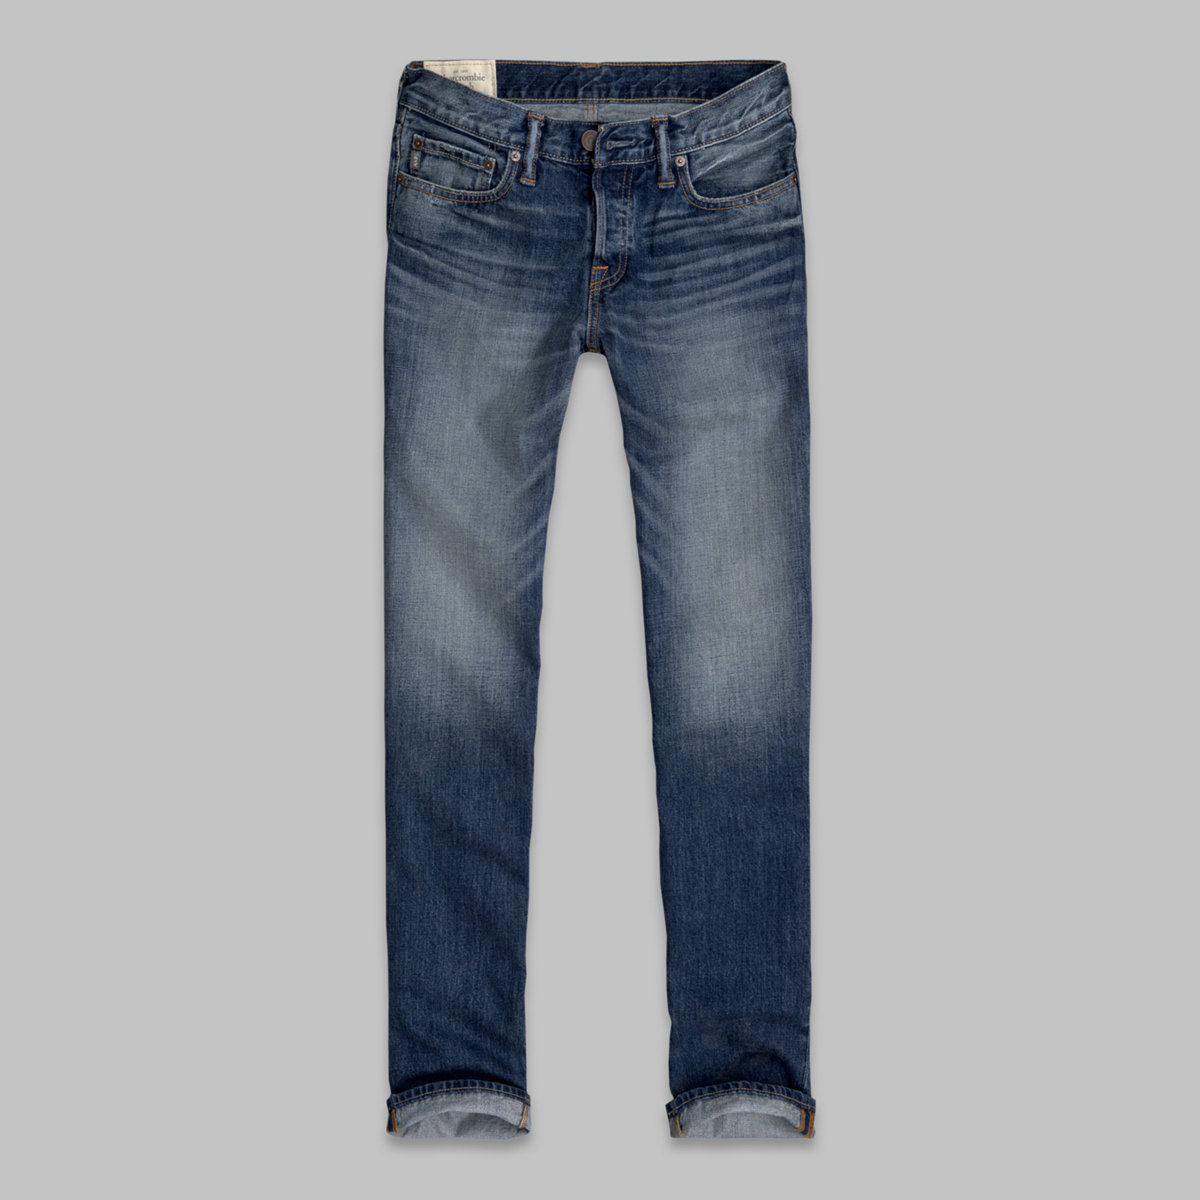 A&F Classic Straight Button Fly Jeans